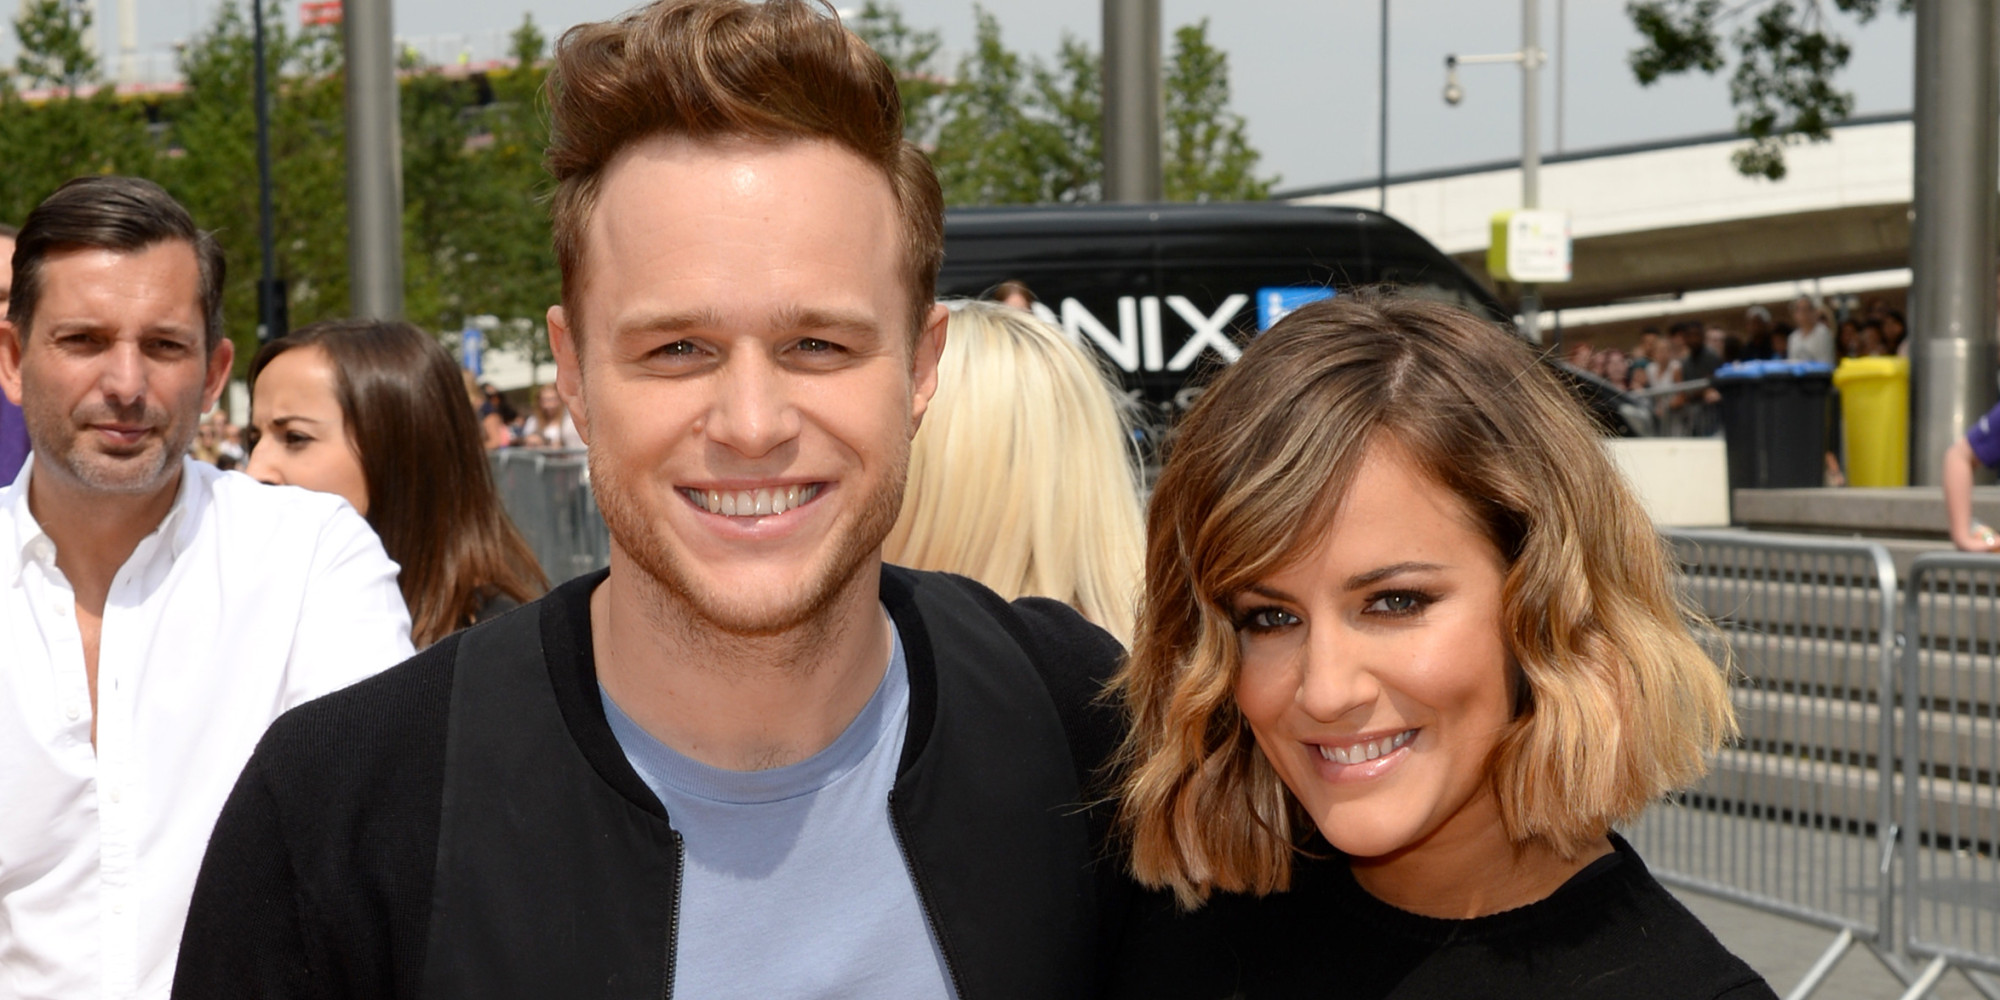 Olly murs black t shirt x factor -  X Factor 2015 Caroline Flack And Olly Murs To Miss Judges Houses As Part Of Live Revamp Huffpost Uk